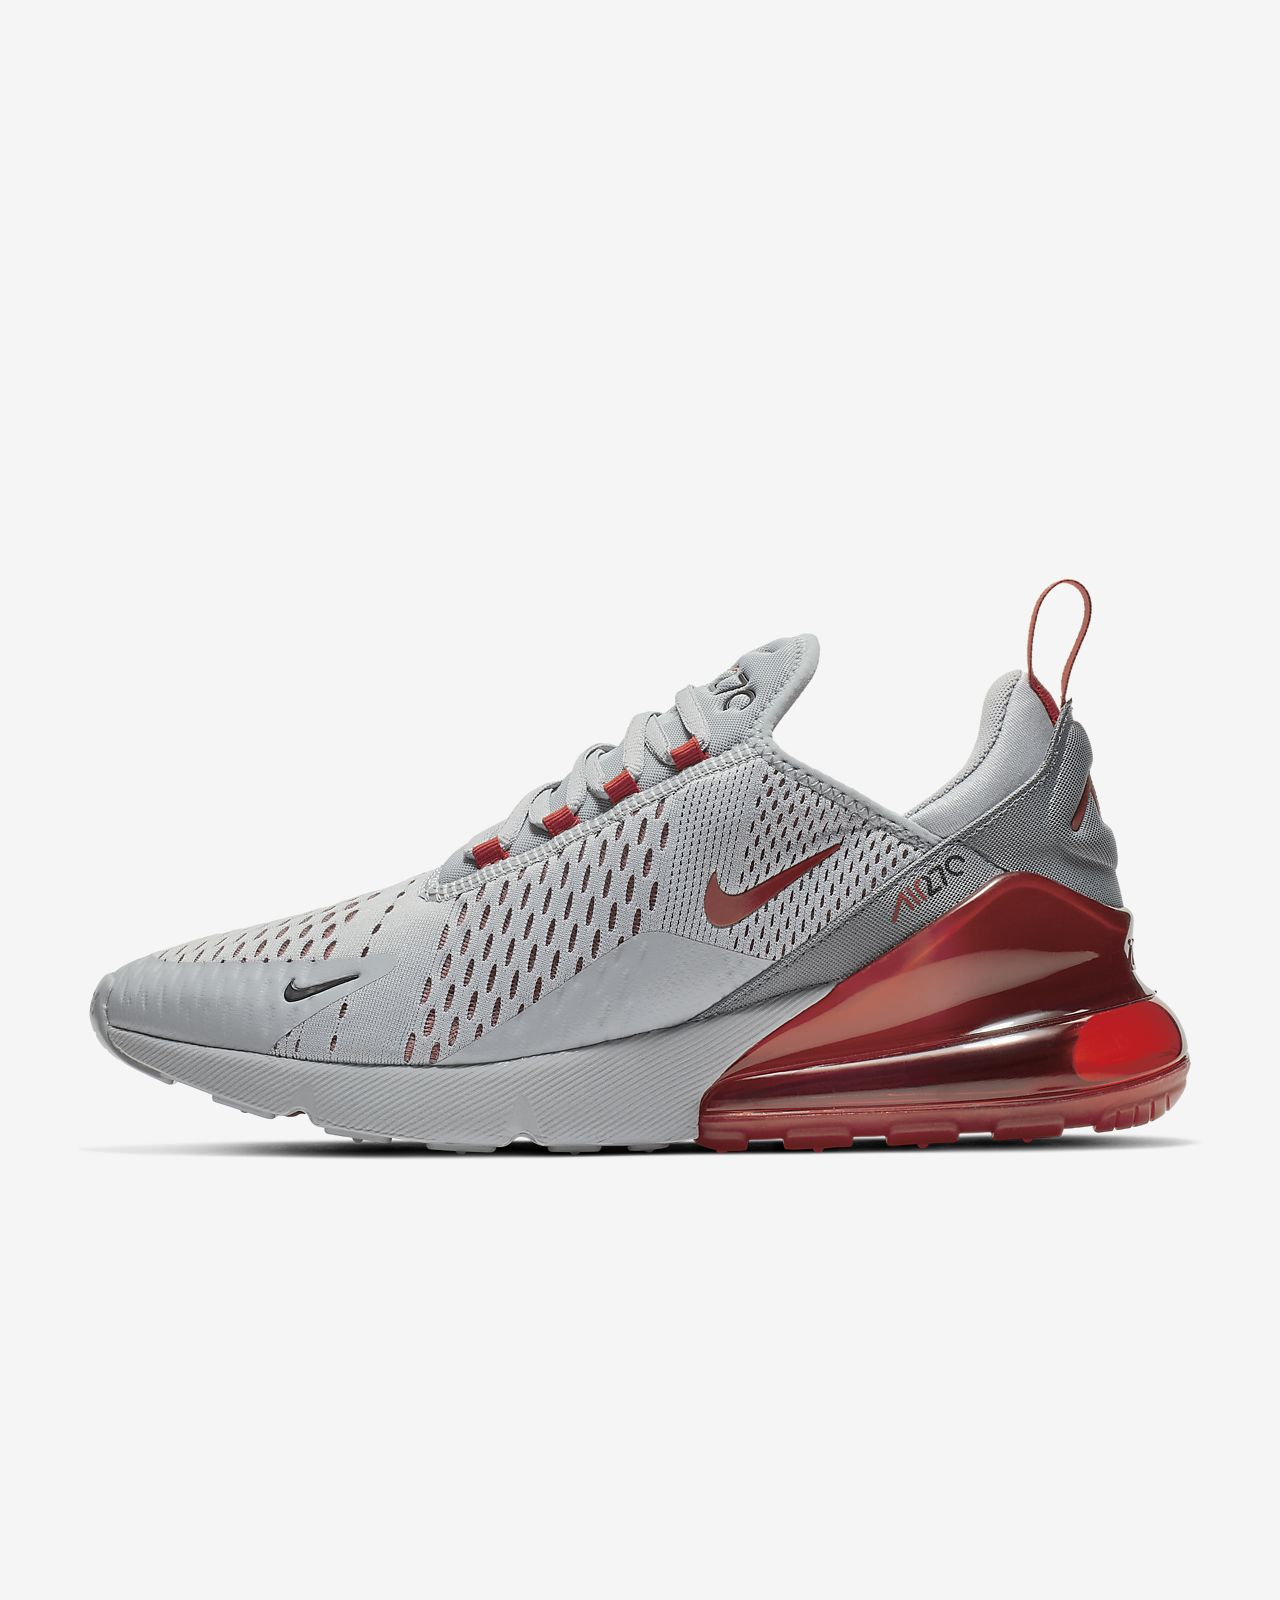 meet d0381 7525d Men s Shoe. Nike Air Max 270